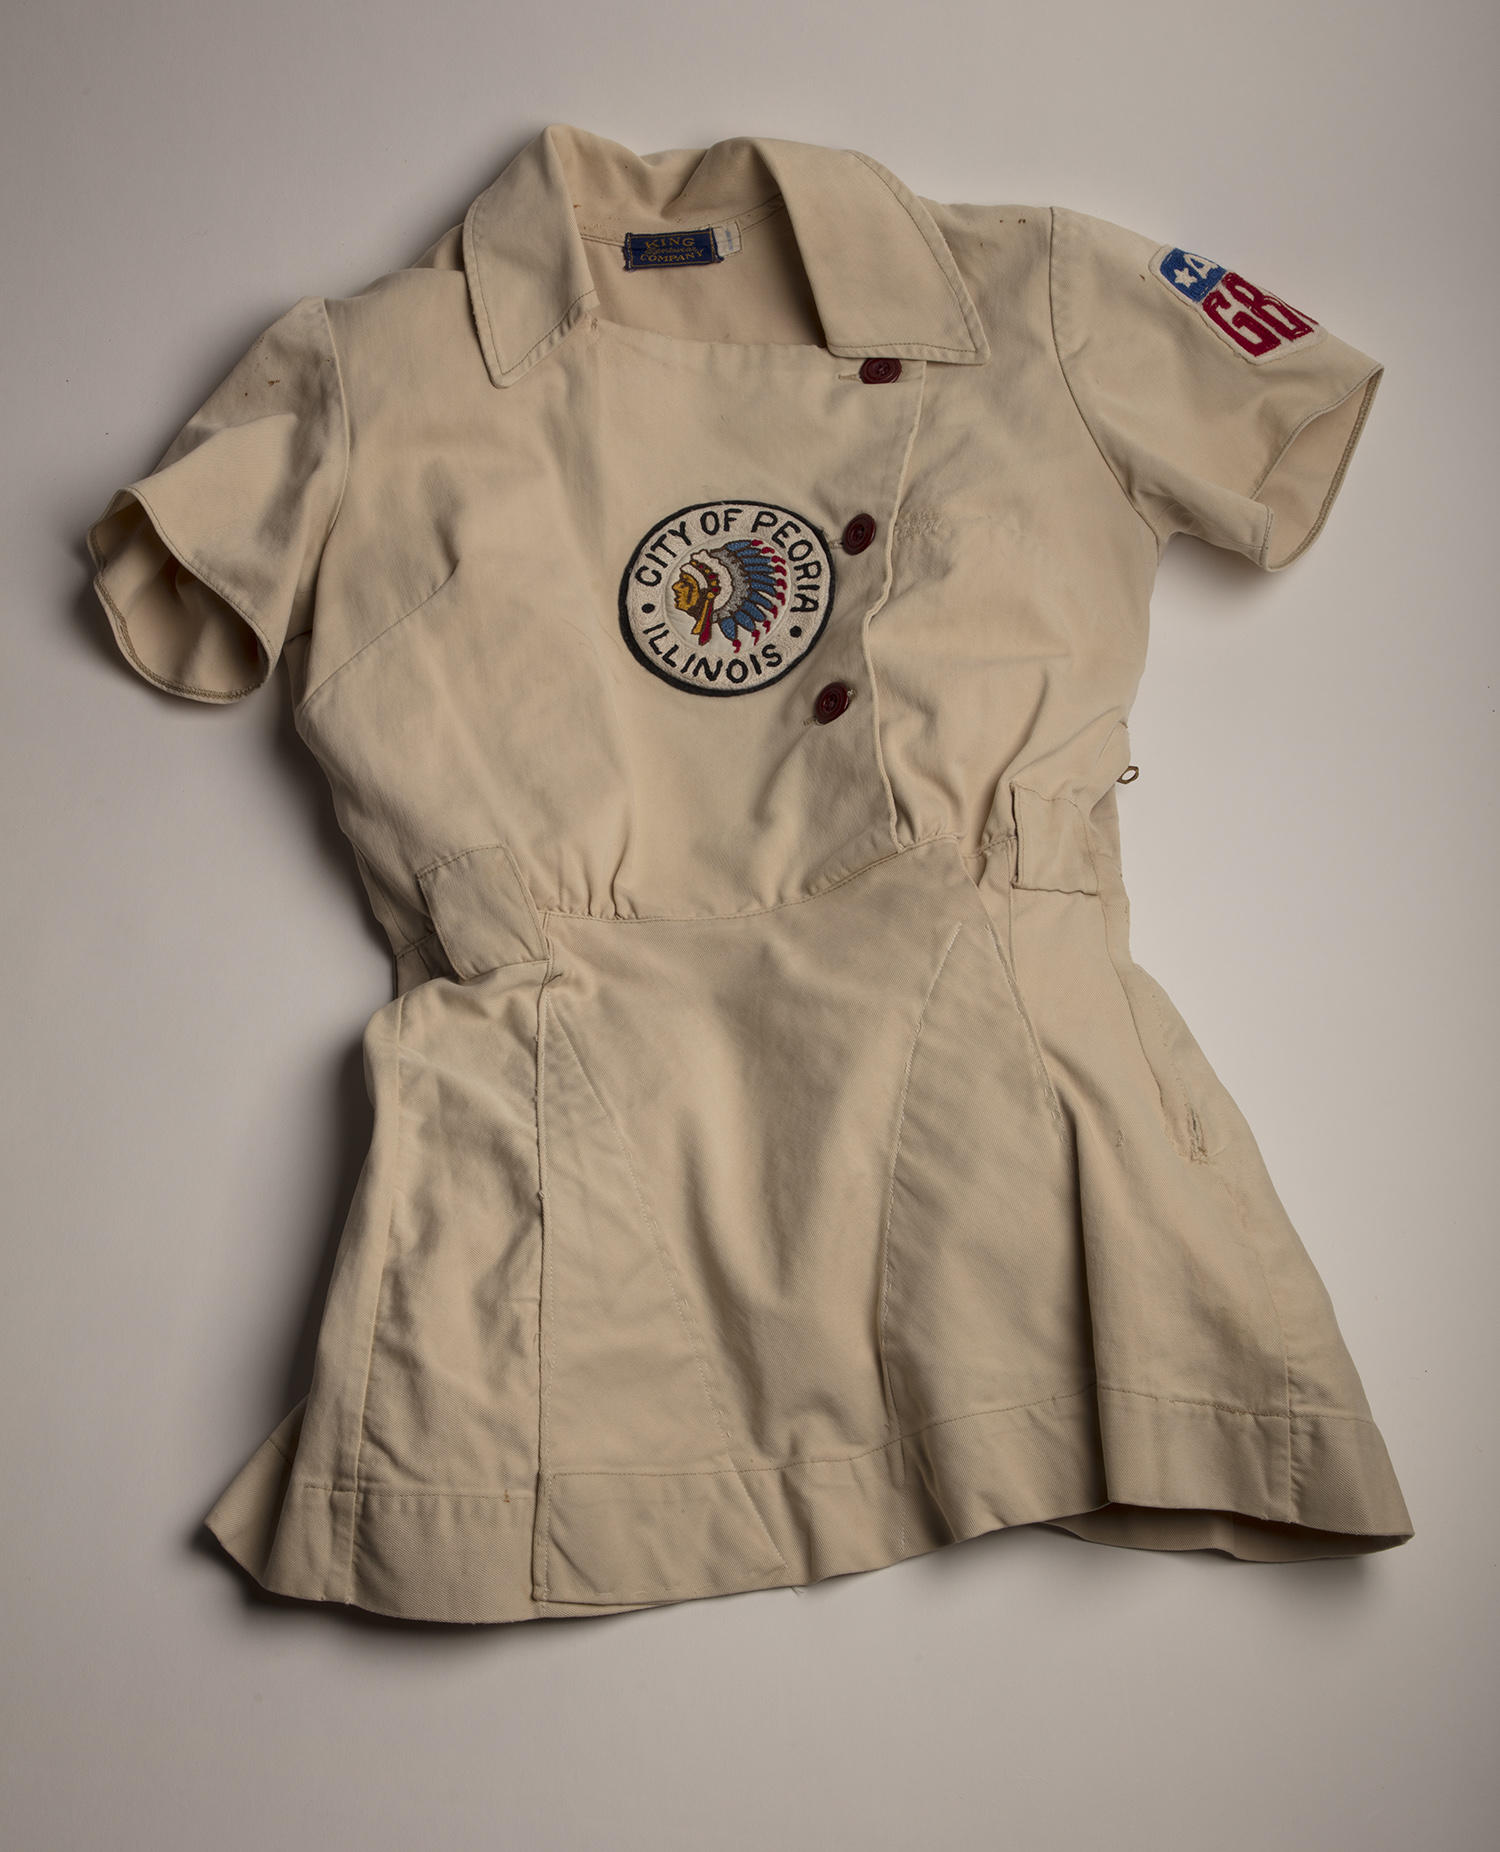 This Peoria Redwings tunic was worn by Annabelle Lee, who played for the team from 1946-1947 and from 1949-1950. (Milo Stewart Jr. / National Baseball Hall of Fame and Museum